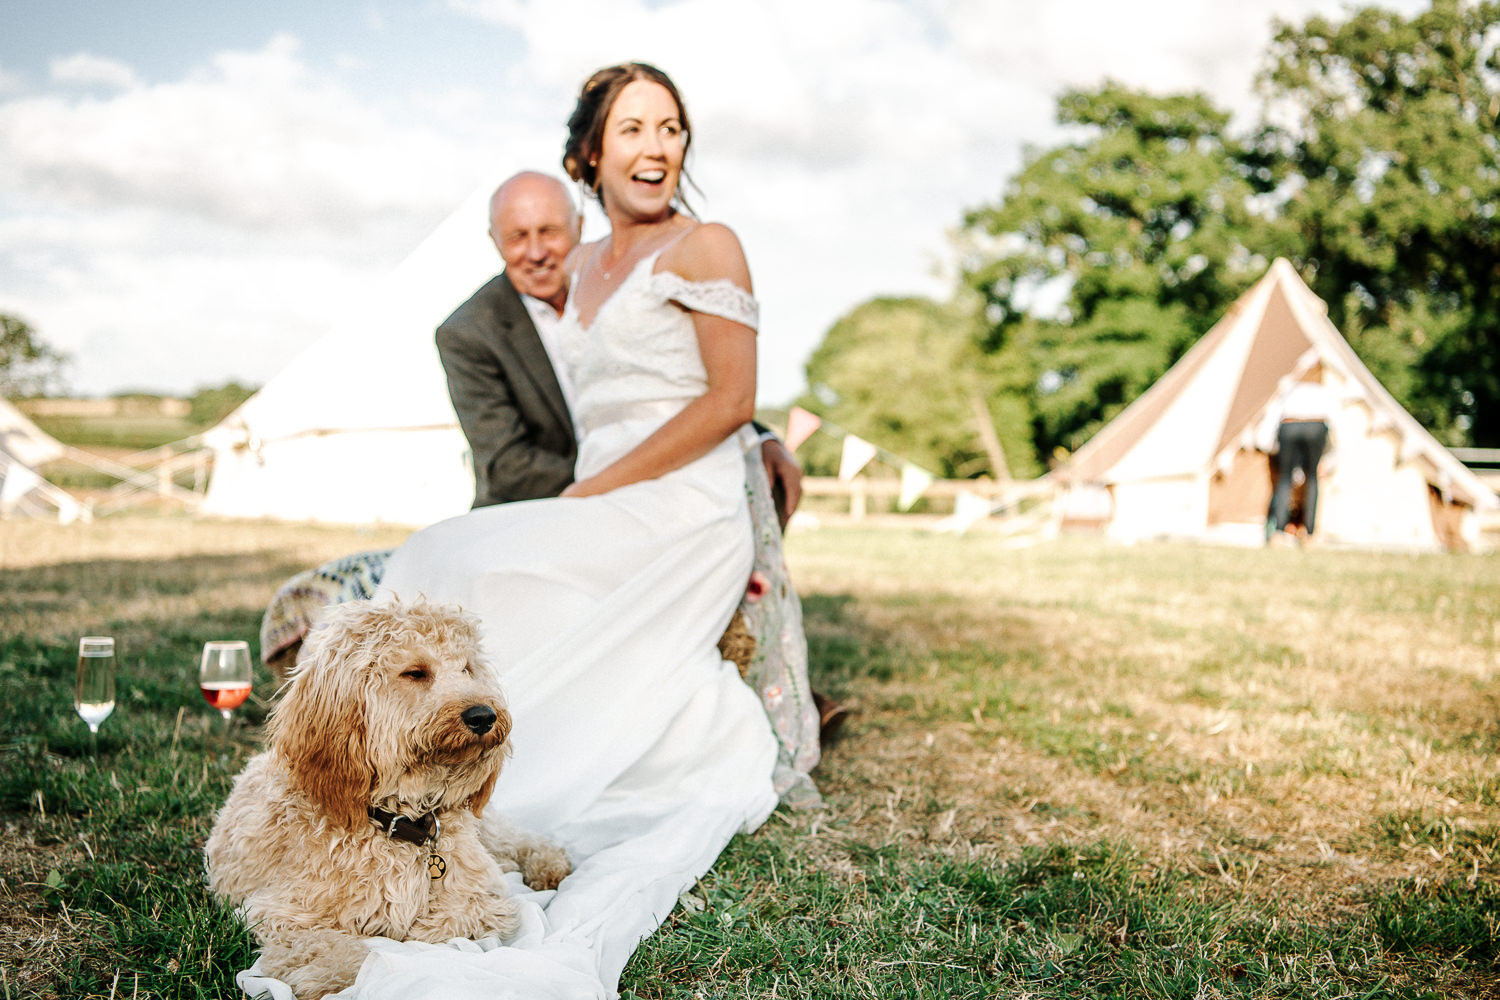 Bride her dad and dog